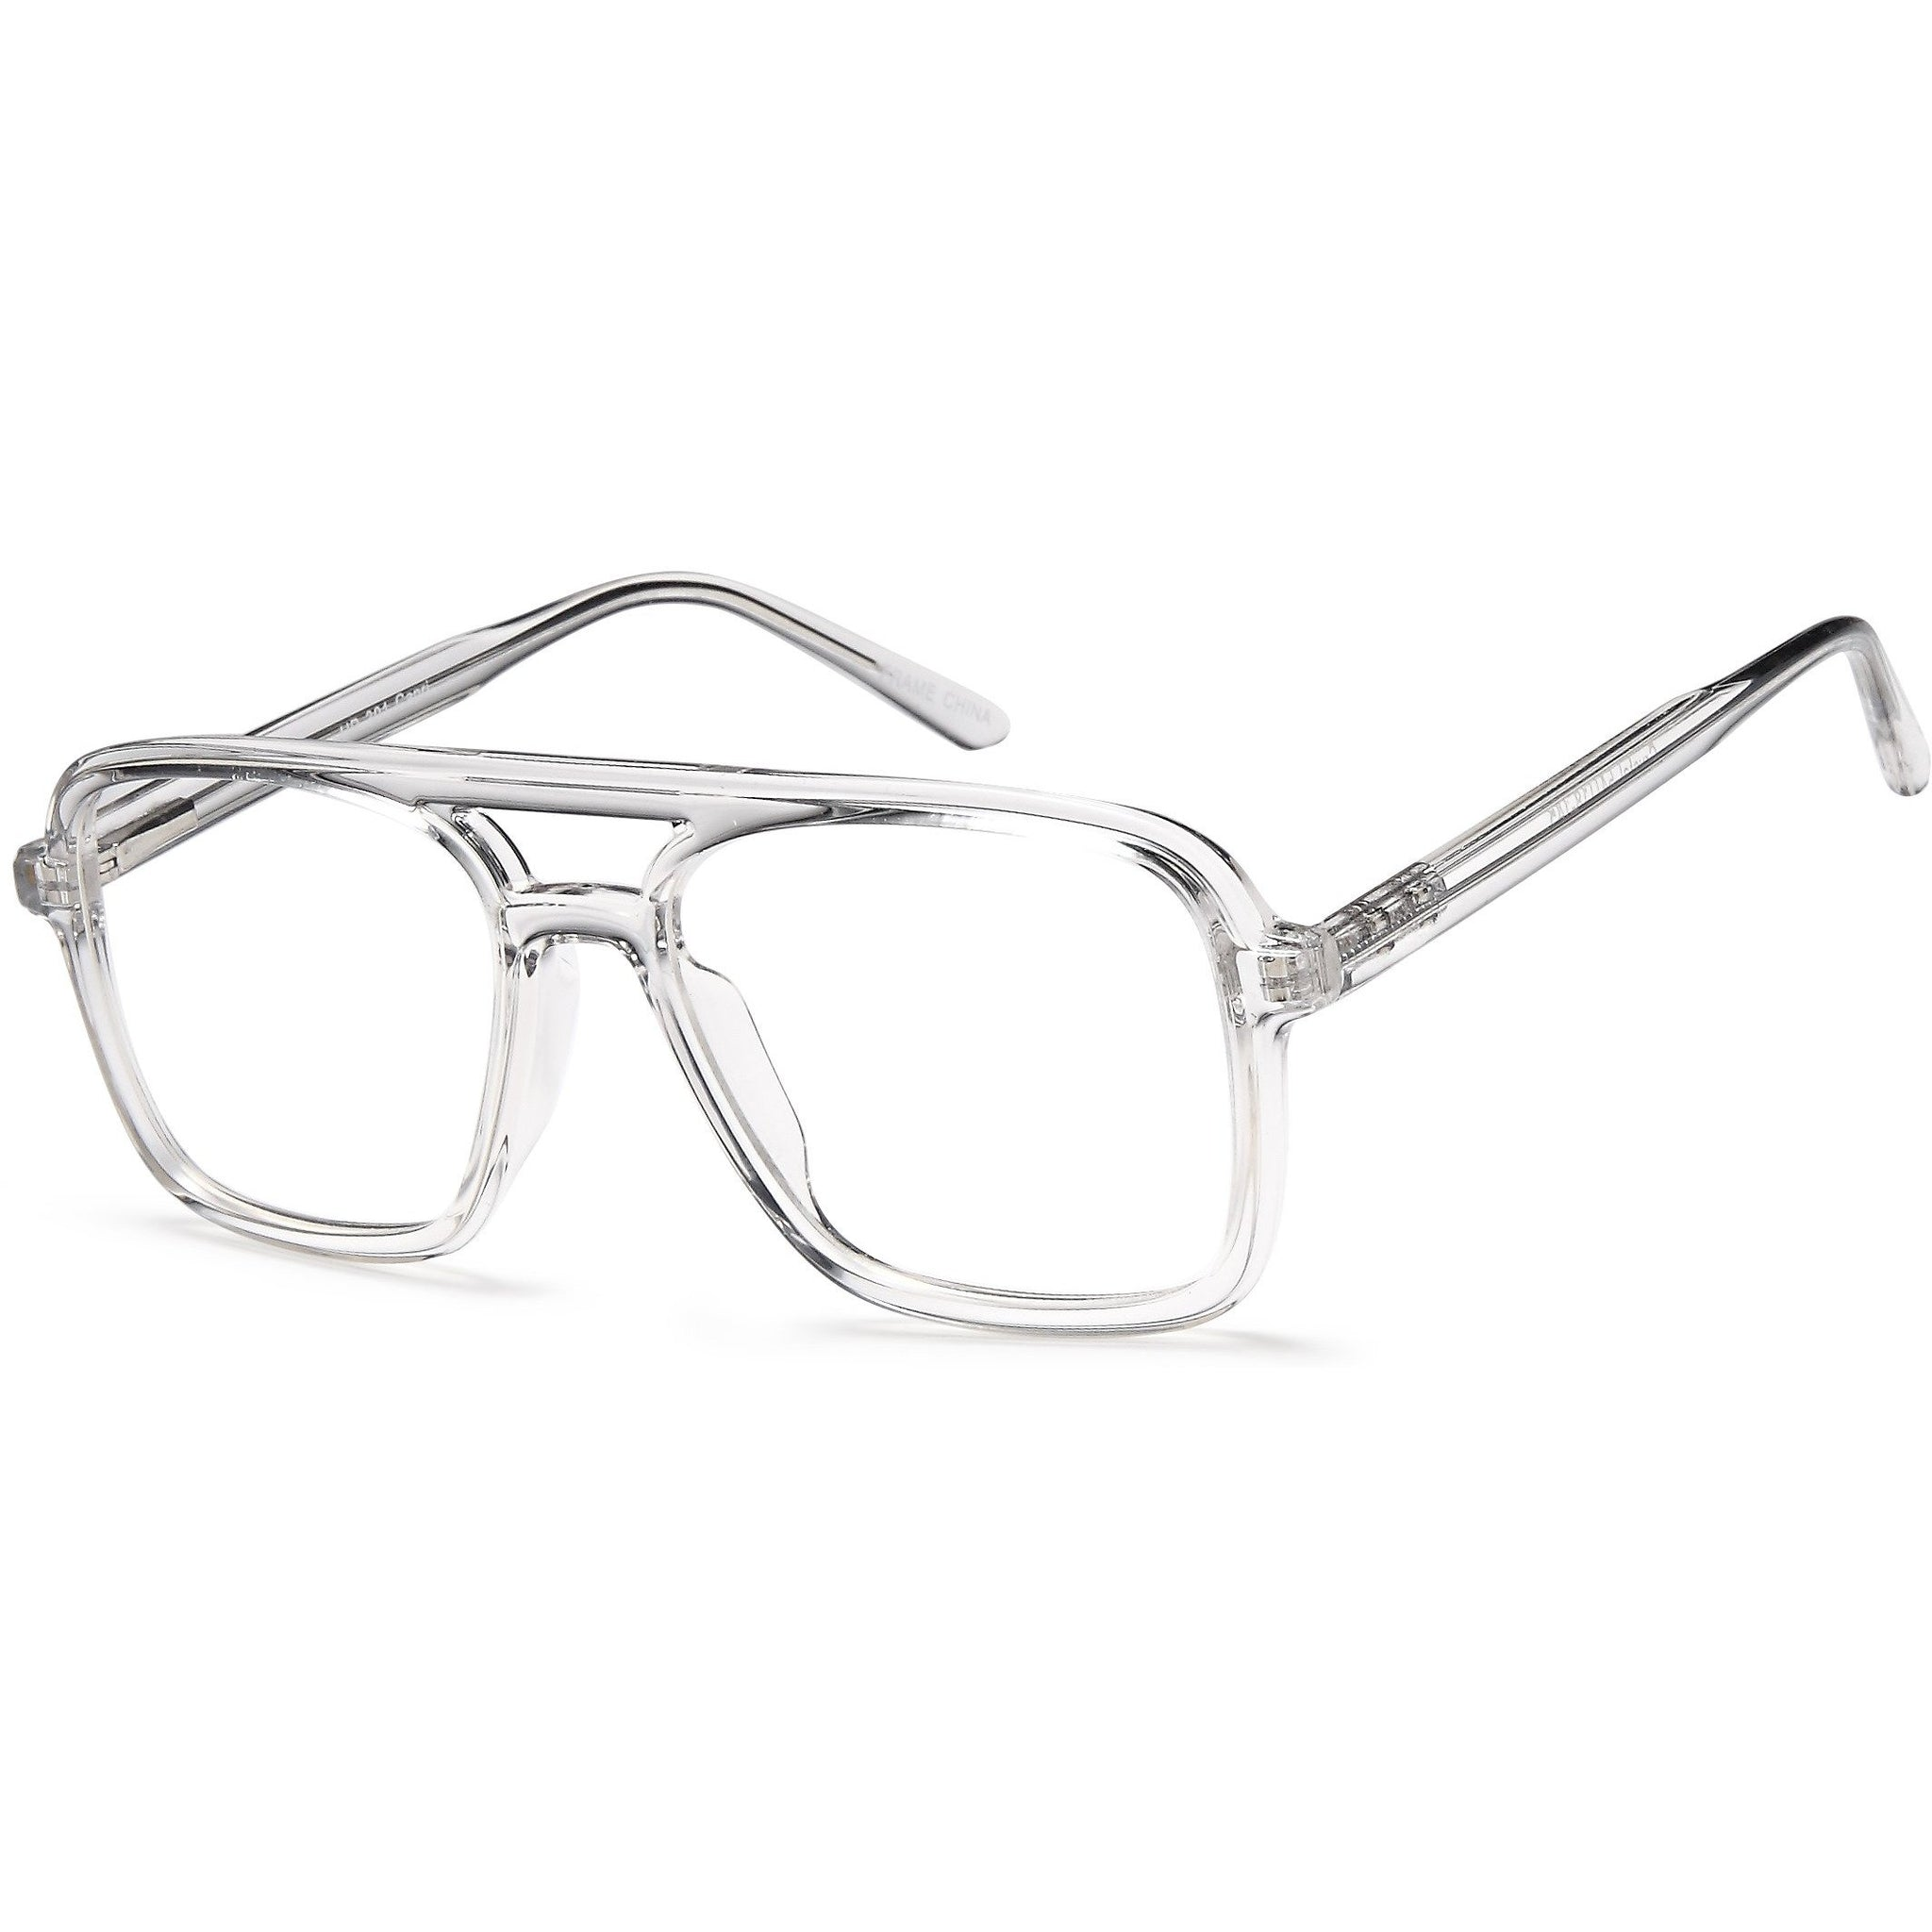 2U Prescription Glasses UP 301 Optical Eyeglasses Frame